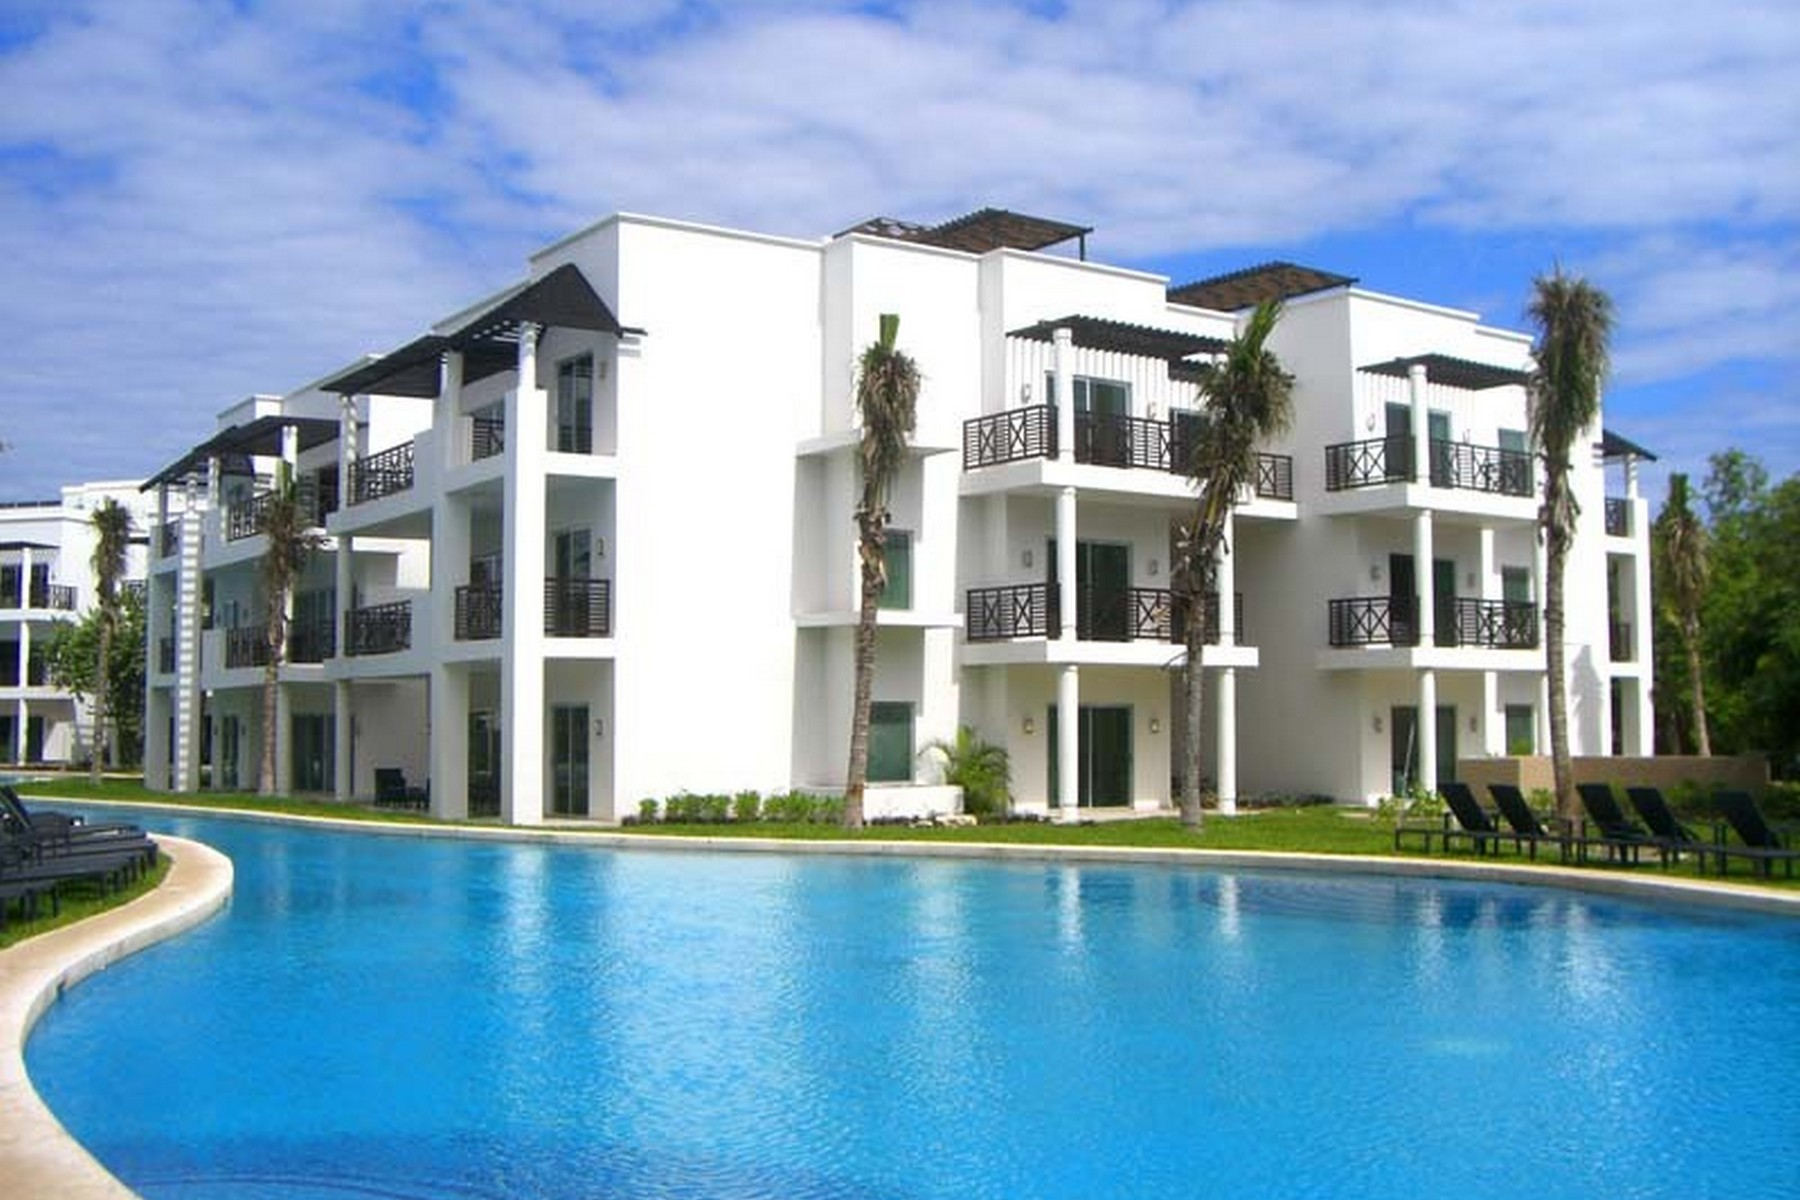 Condominium for Sale at PENTHOUSE XCALACOCO Playa Del Carmen, Quintana Roo 77710 Mexico